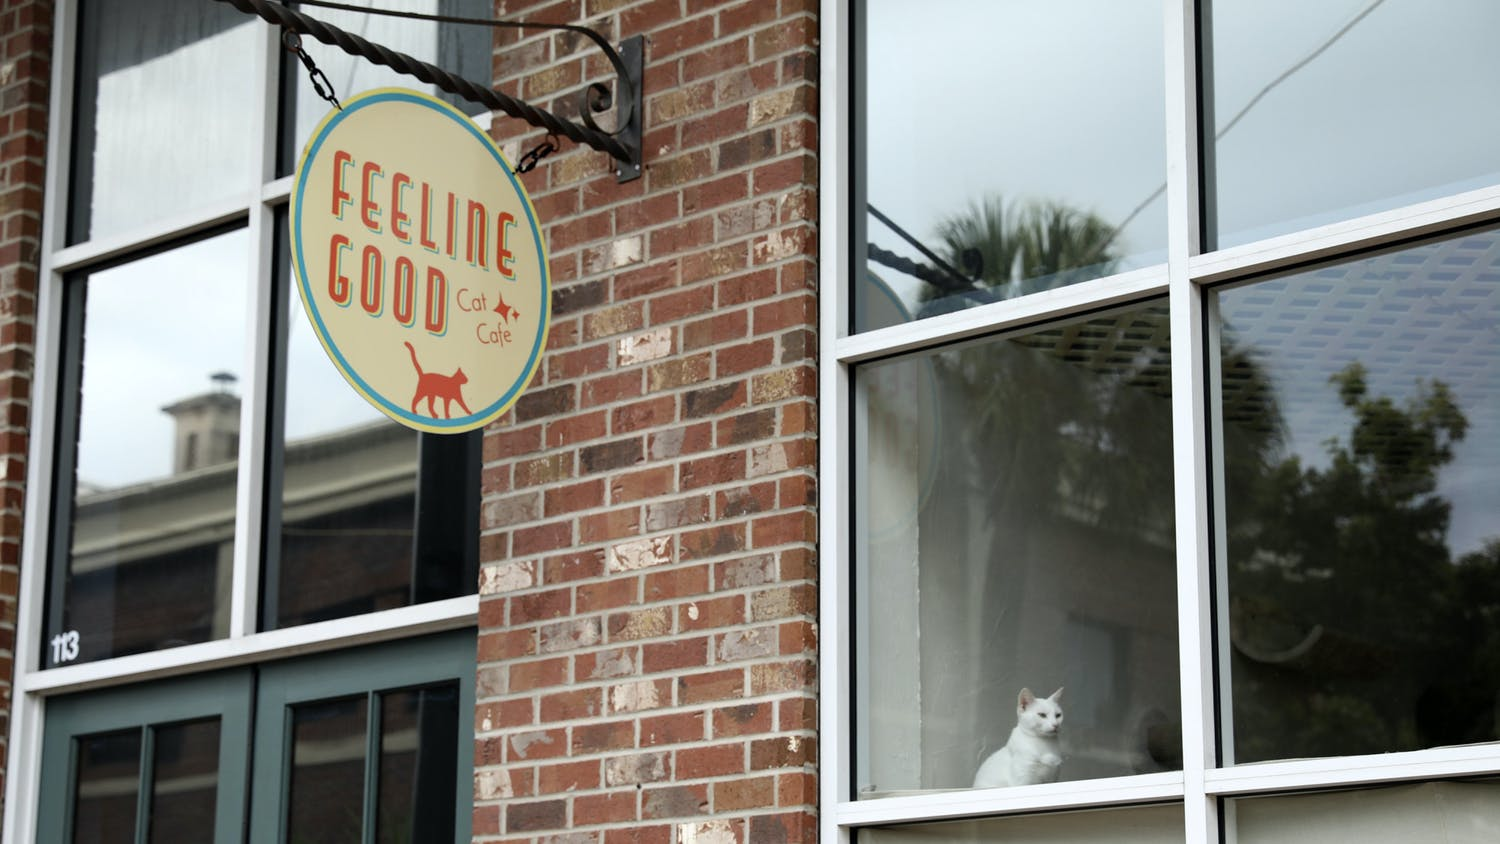 A white cat sits at the window of the Feeline Good Cat Café on Sunday, July 4, 2021. At the café, visitors can pet cats while enjoying beverages.